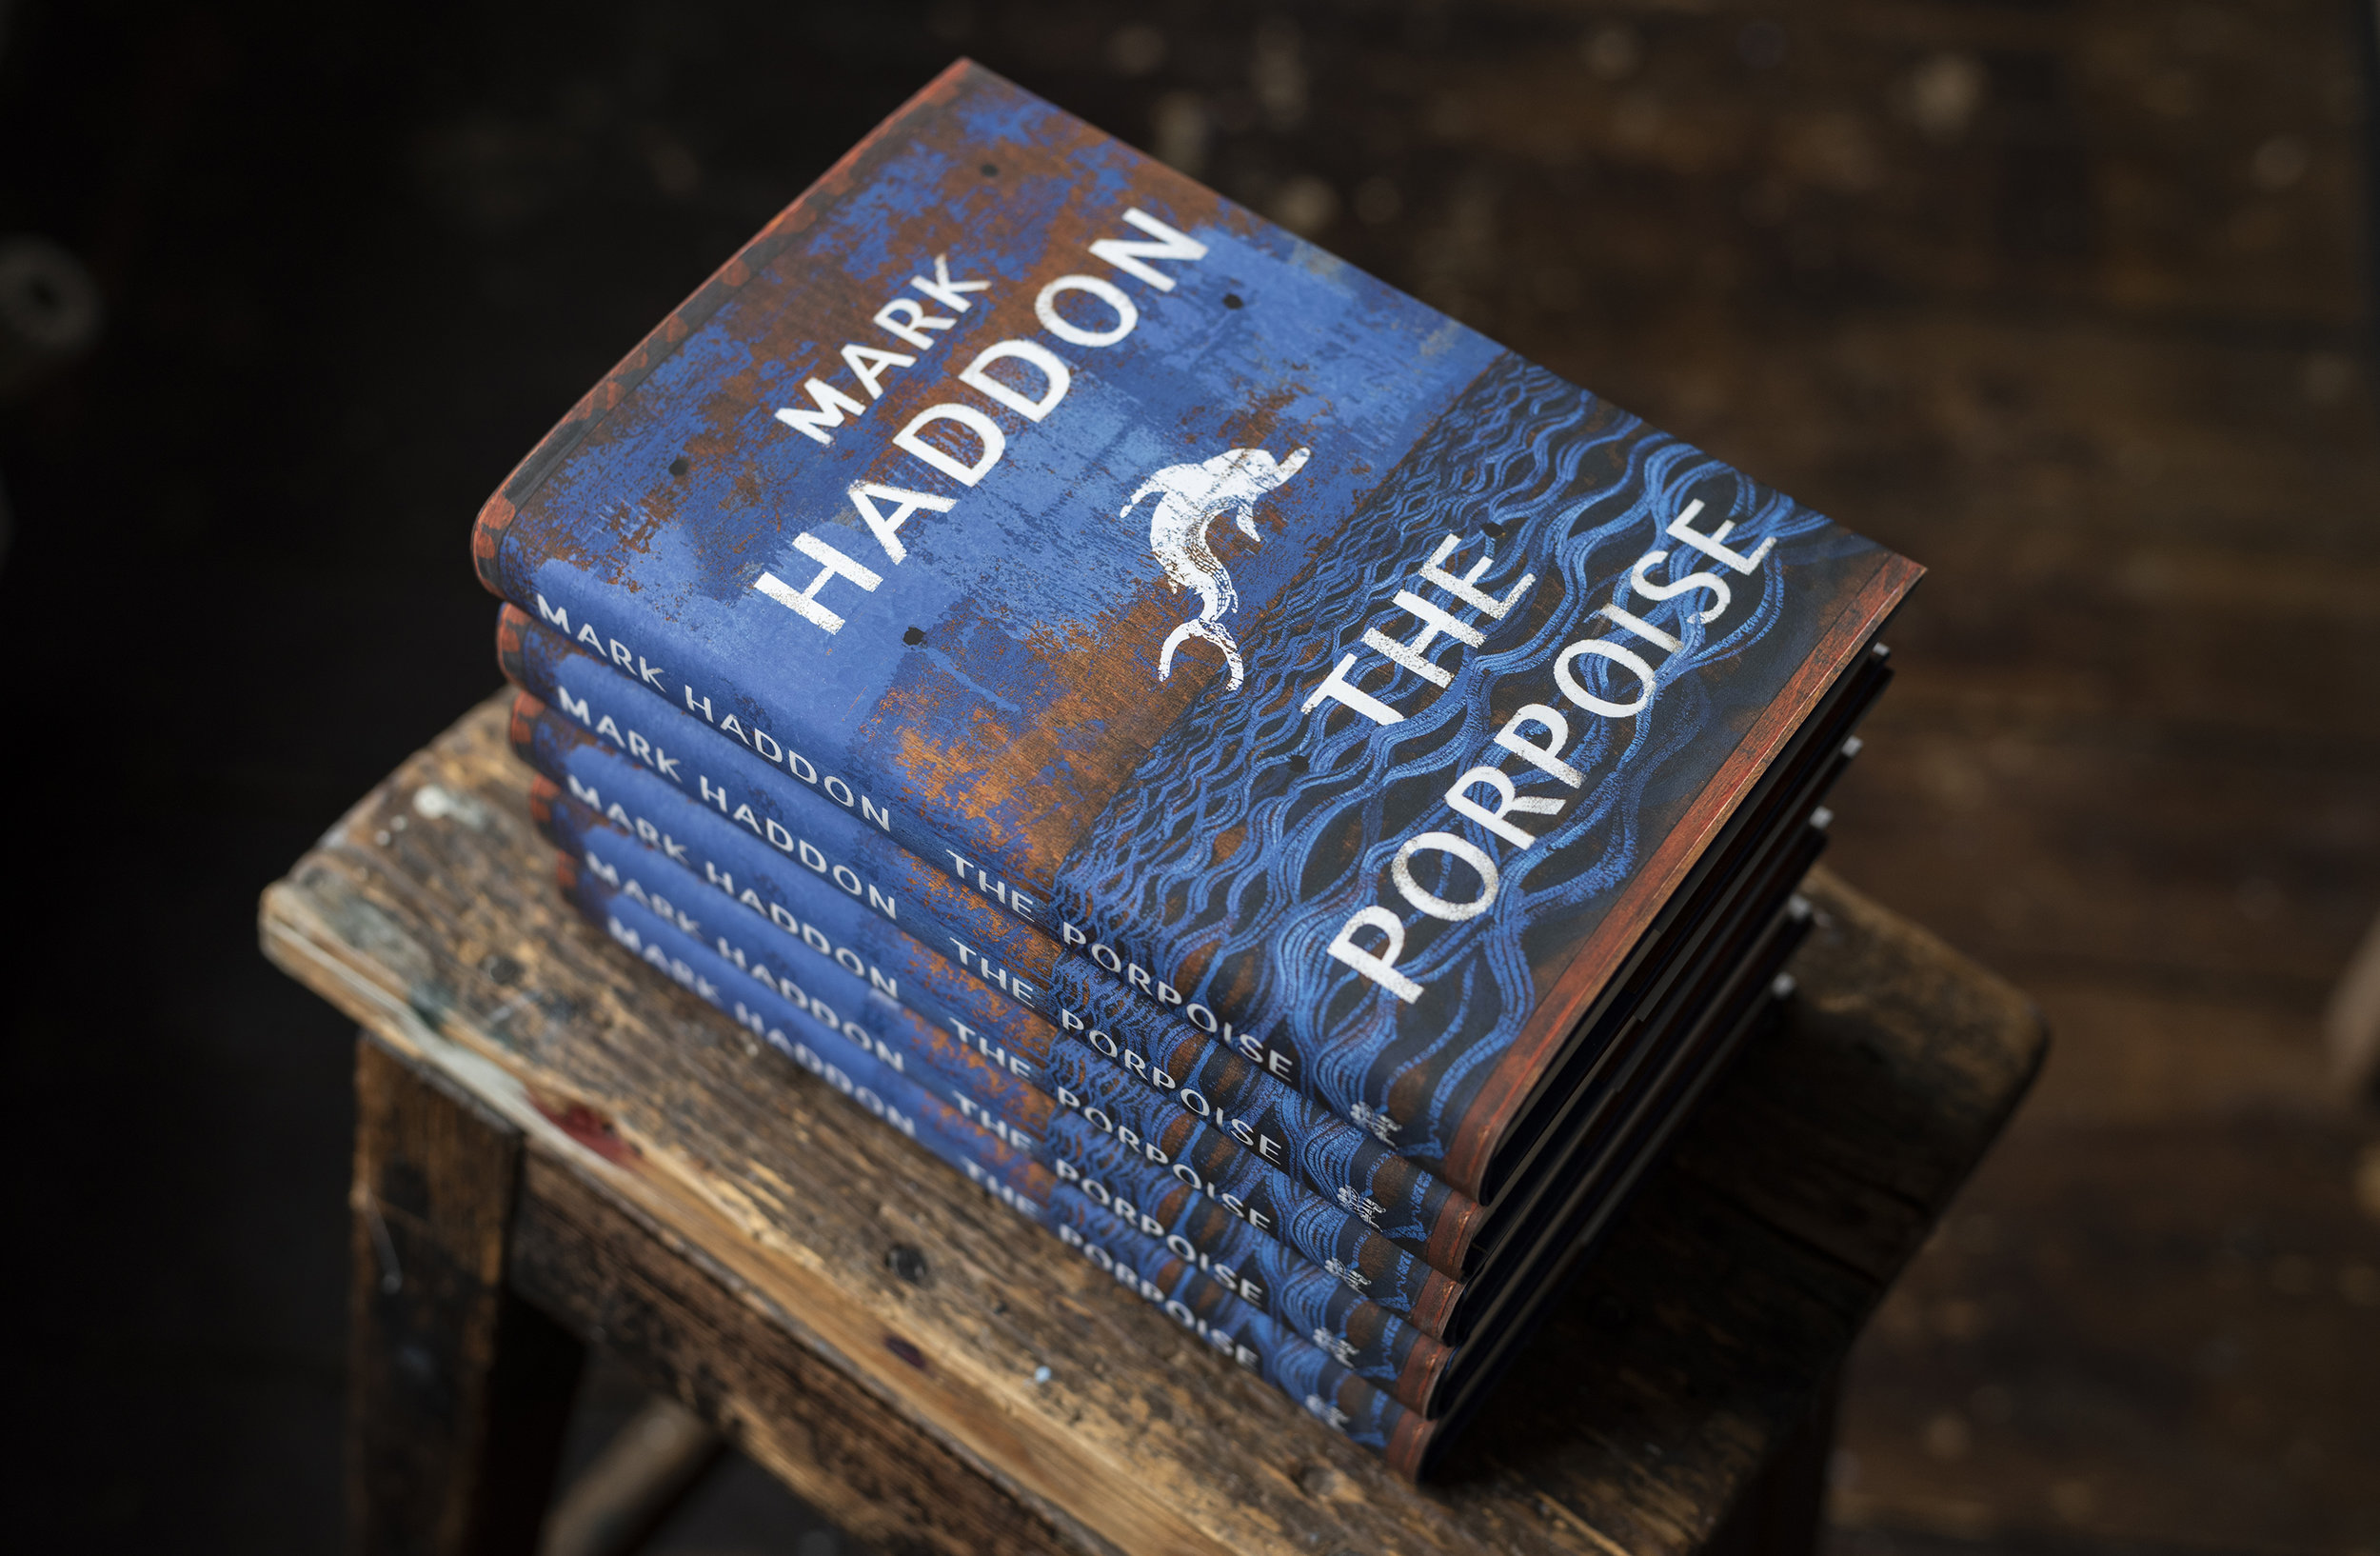 The Porpoise Design, Mark Haddon, cover by David Cass and Suzanne Dean